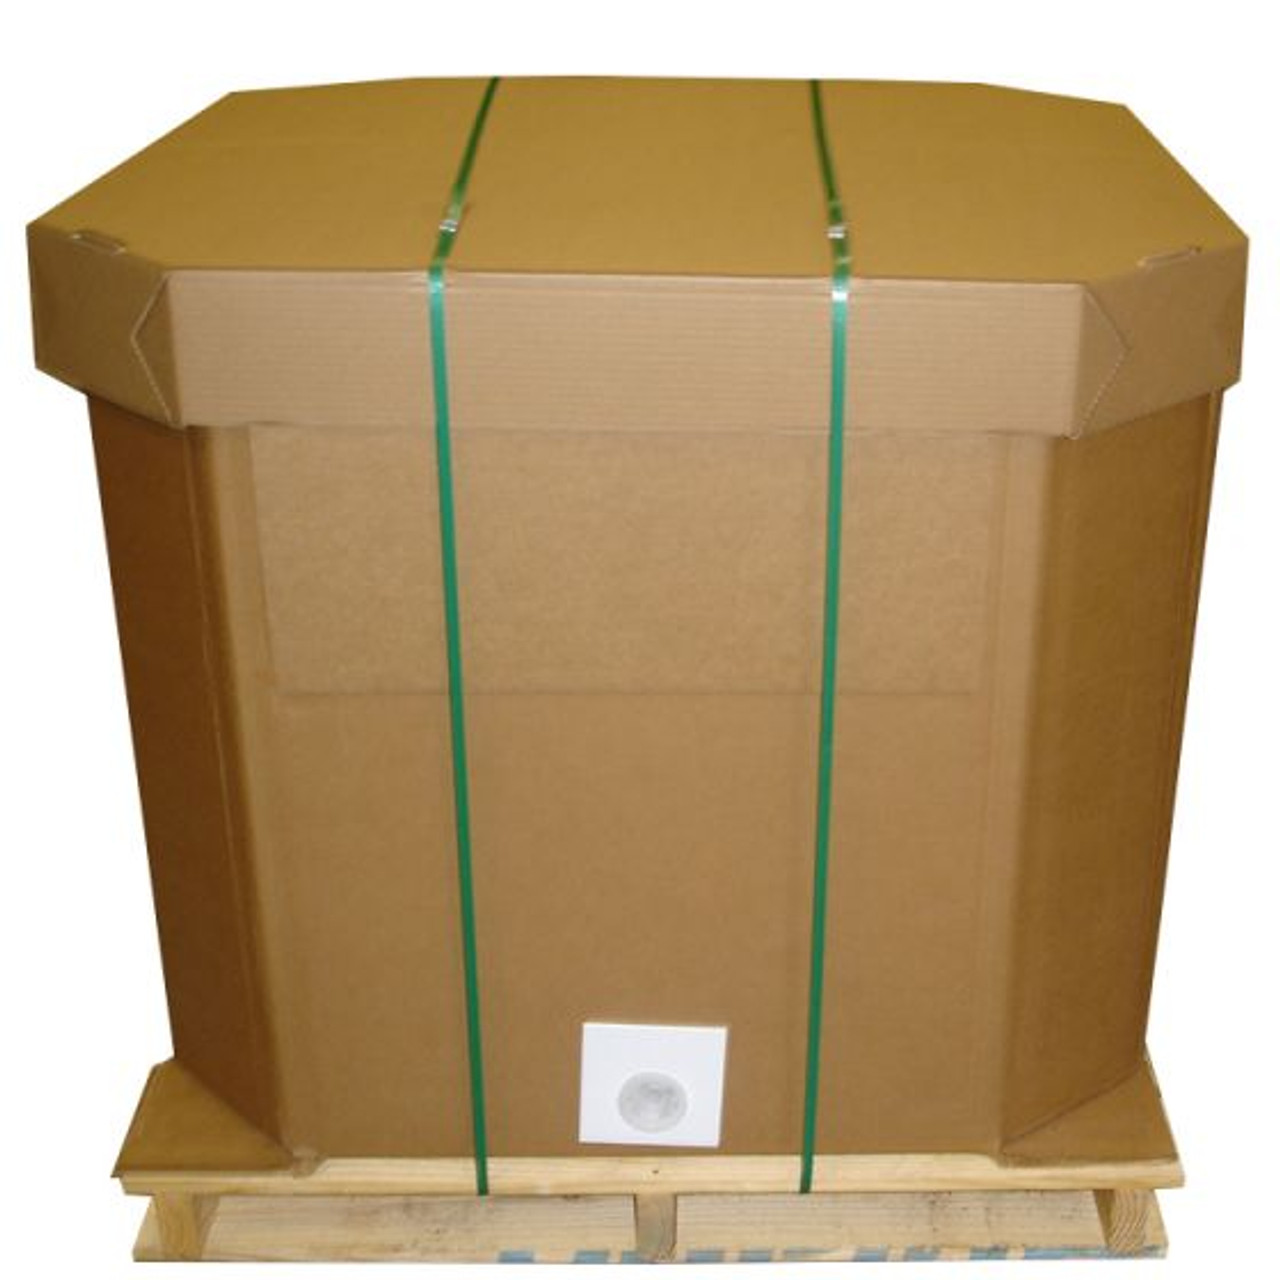 275 Gallon LiquiSet IBC Packaging System with Cube Liner